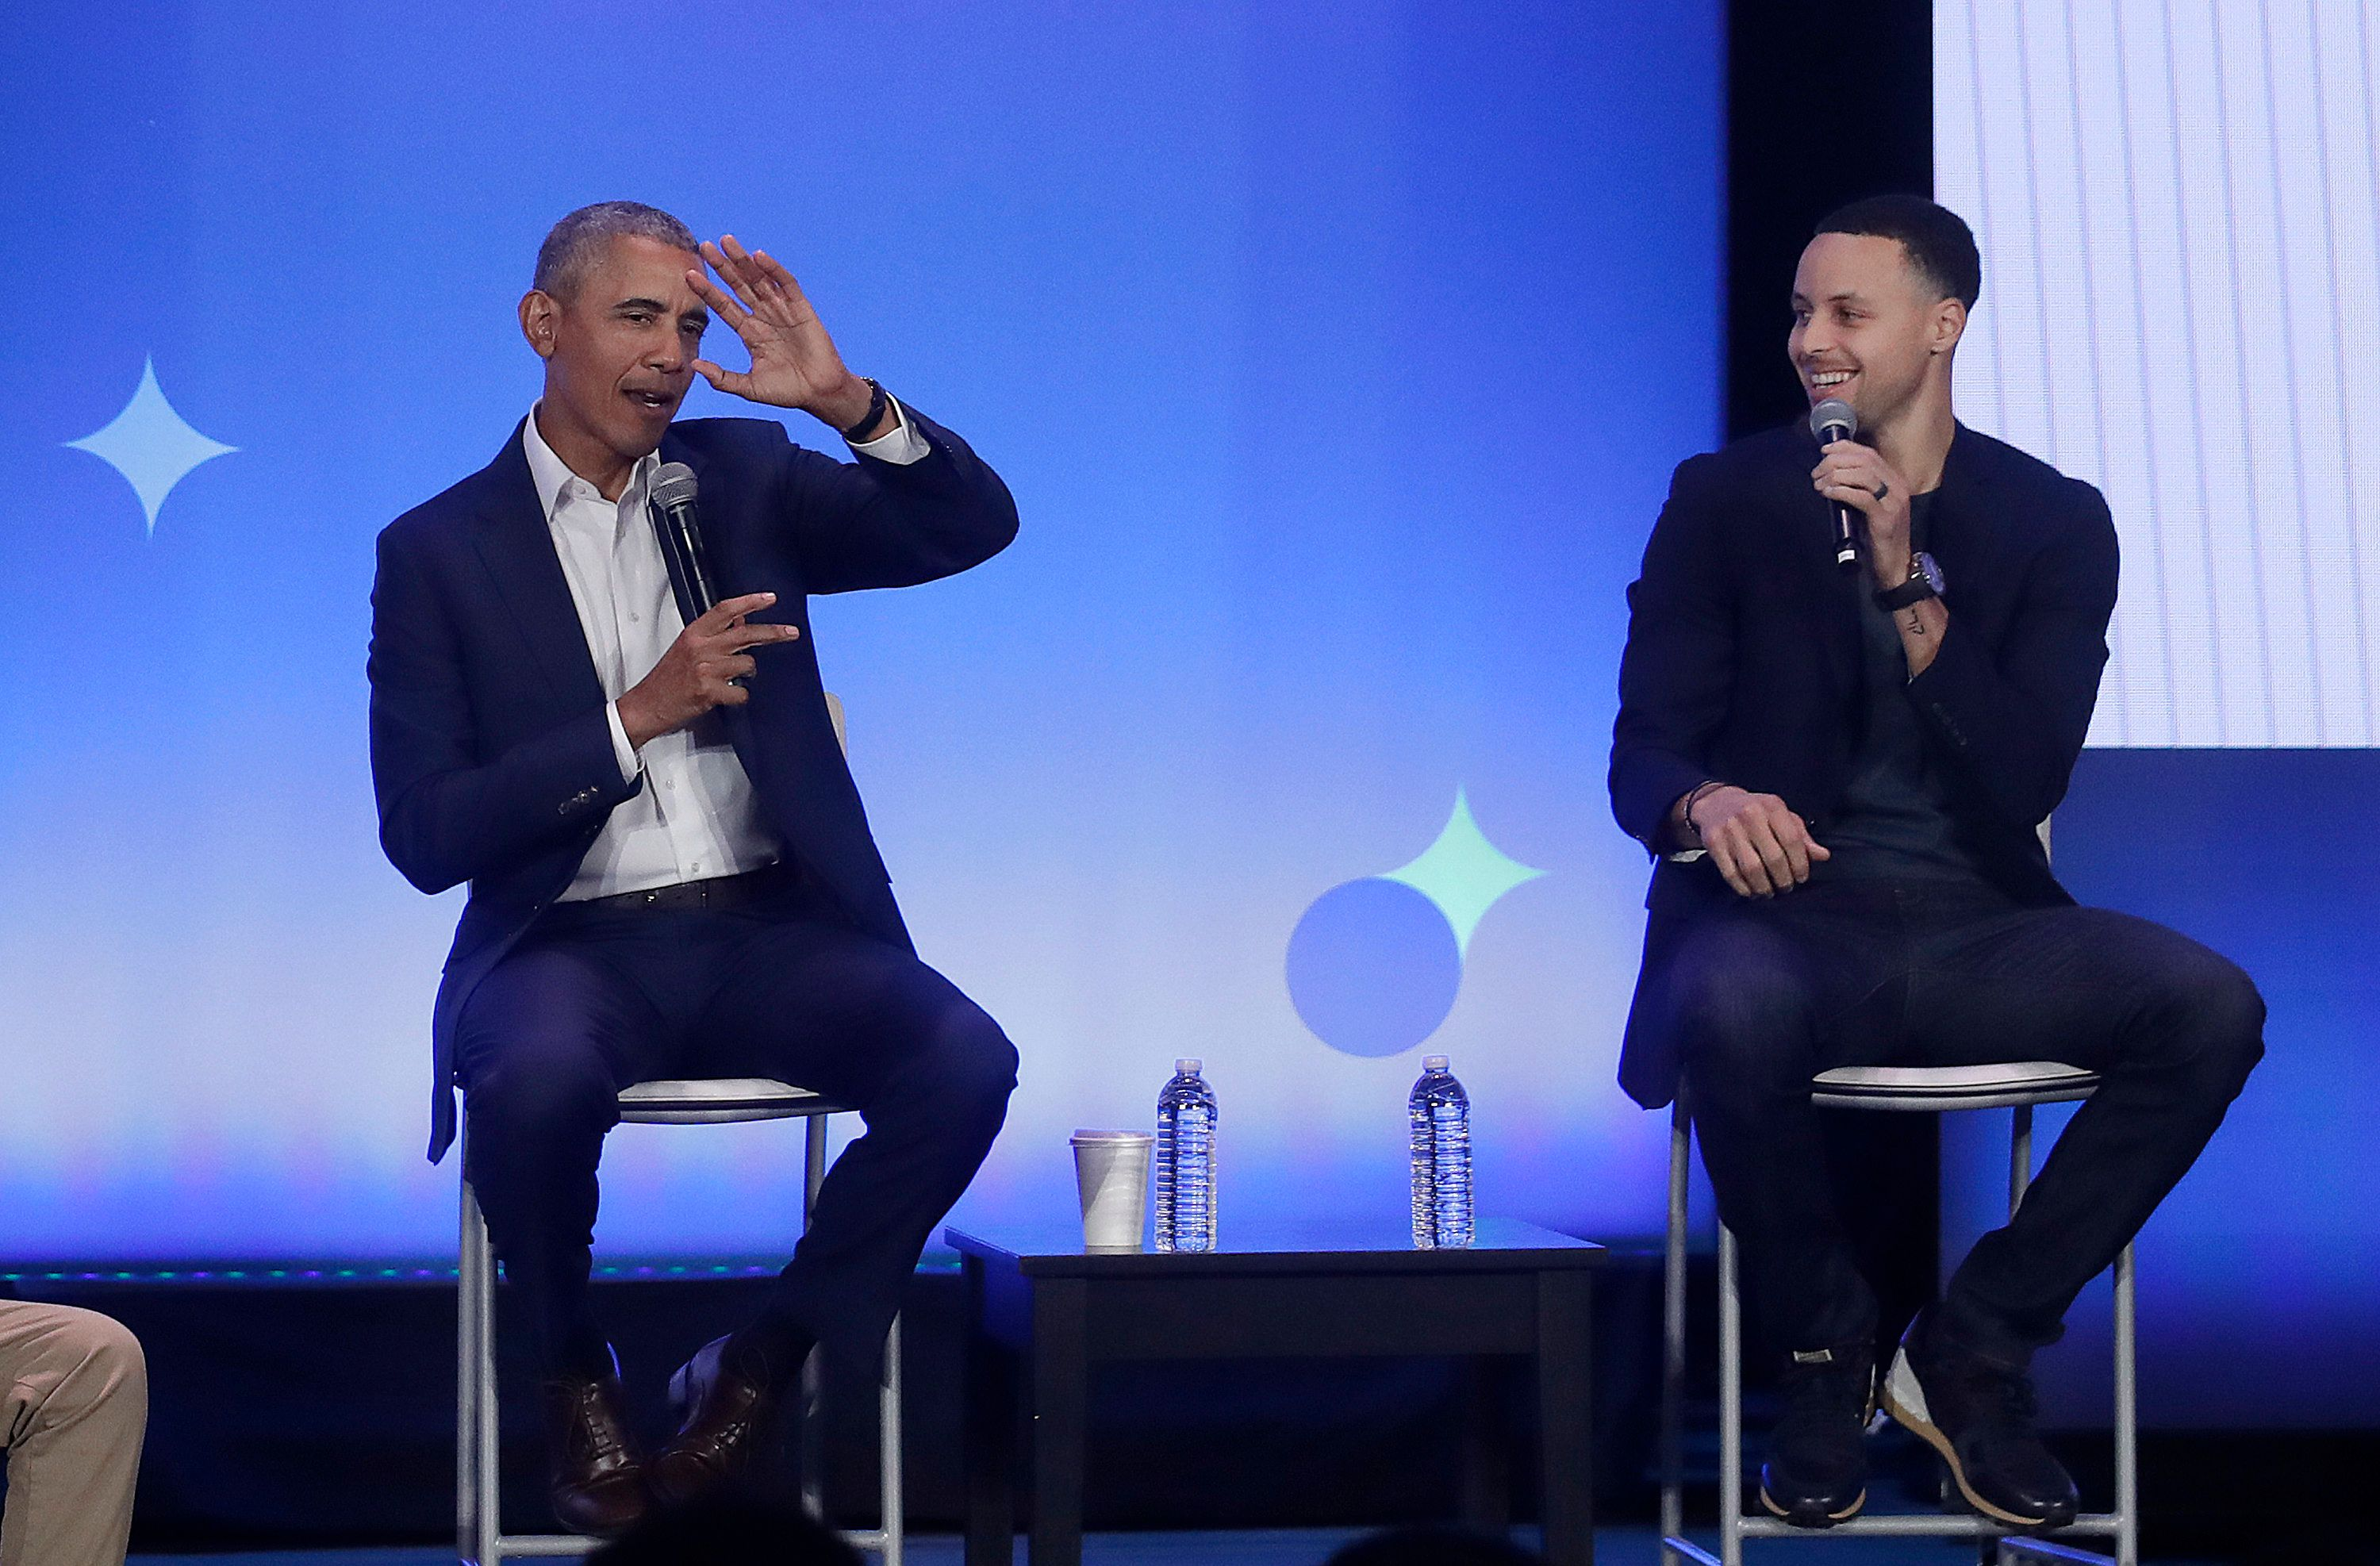 Former President Barack Obama, left, gestures as Golden State Warriors basketball player Stephen Curry laughs while speaking at the My Brother's Keeper Alliance Summit in Oakland, Calif., Tuesday, Feb. 19, 2019. (AP Photo/Jeff Chiu)